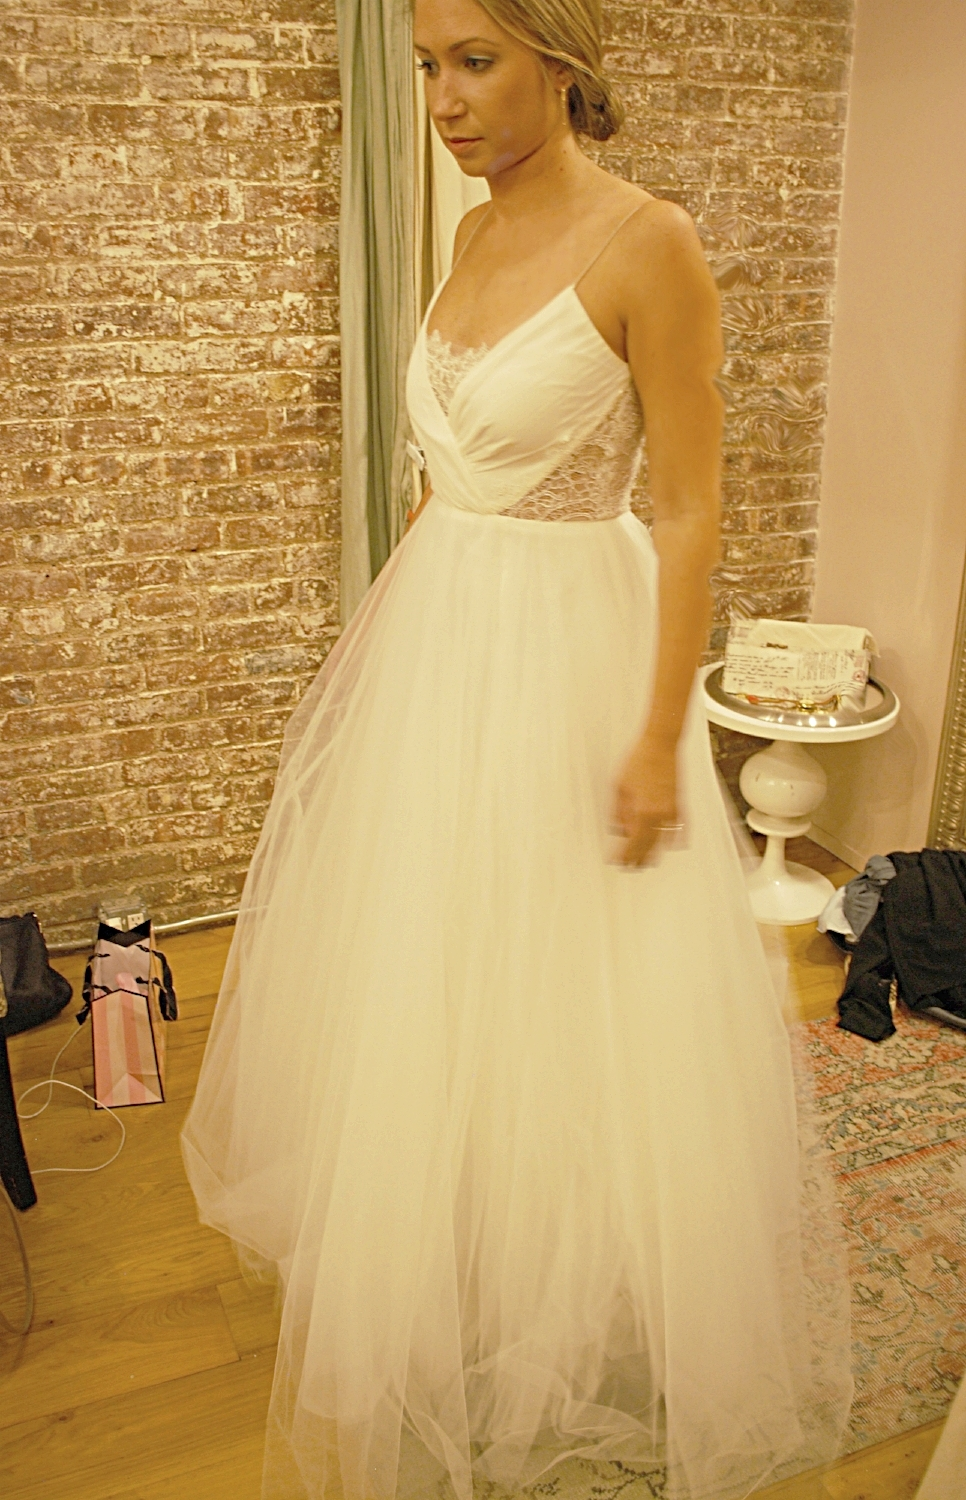 Loved the geometric nature of this dainty bodice!